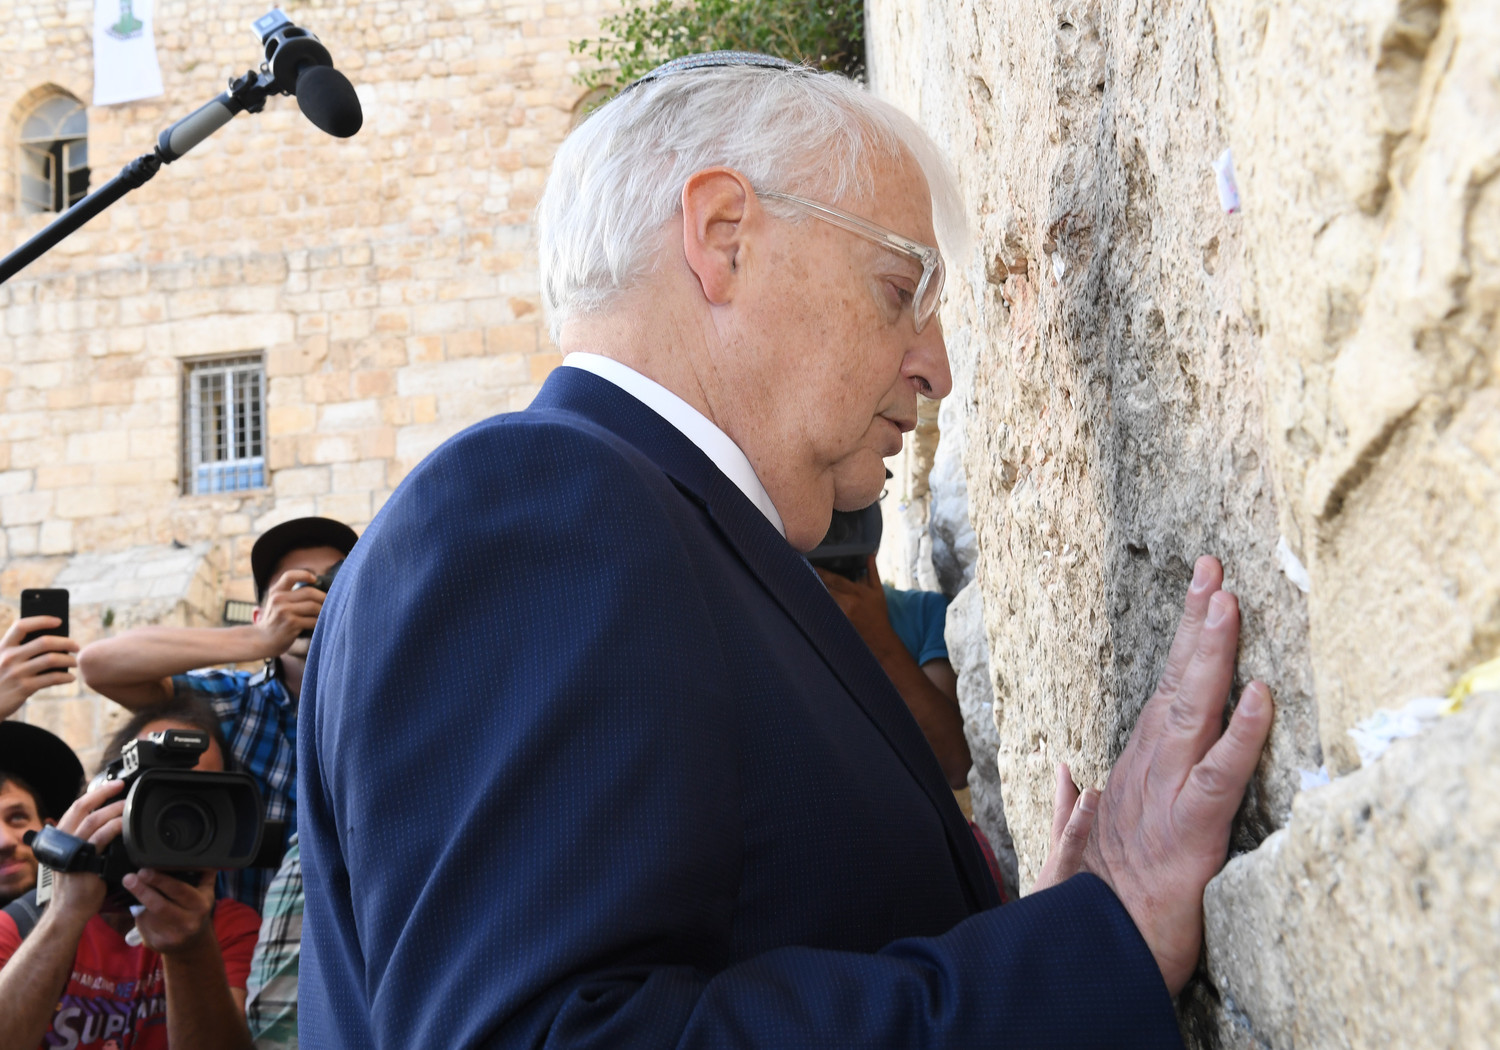 Ambassador Friedman at the Kotel on May 15, 2017